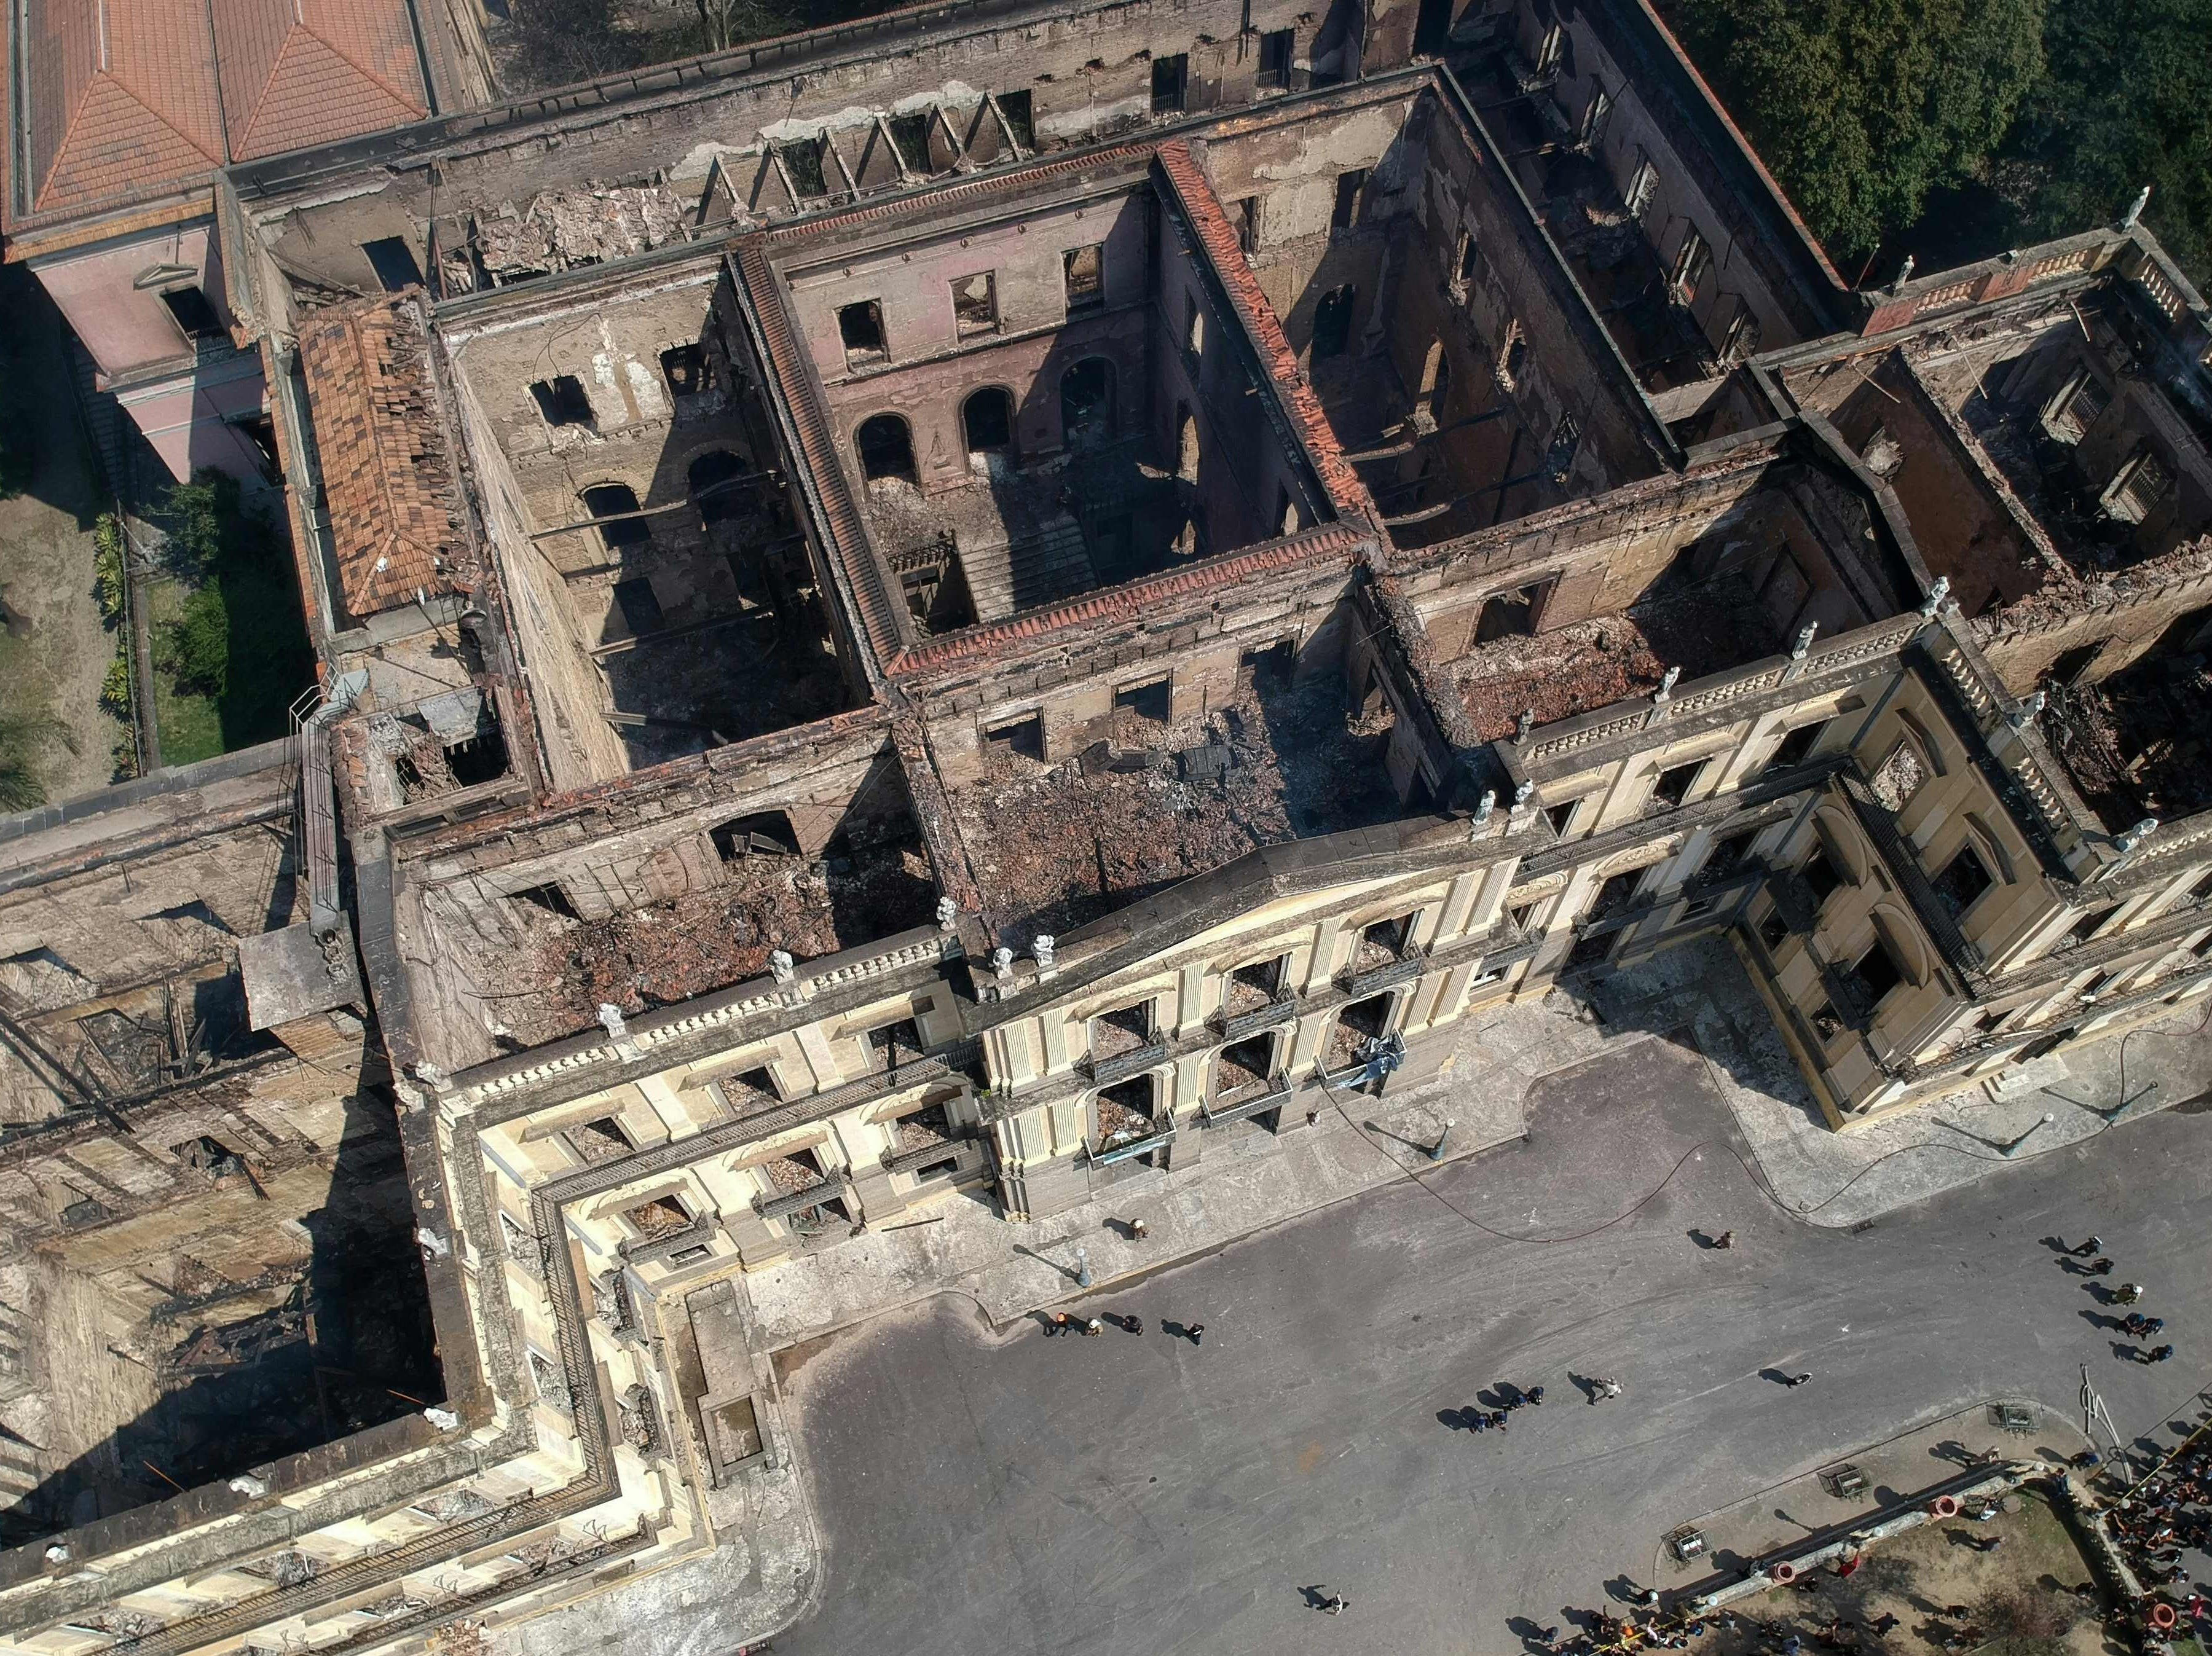 Aerial view of Rio de Janeiro's treasured National Museum, one of Brazil's oldest, on September 3, 2018, a day after a massive fire ripped through the building. - The majestic edifice stood engulfed in flames as plumes of smoke shot into the night sky, while firefighters battled to control the blaze that erupted around 2230 GMT. Five hours later they had managed to smother much of the inferno that had torn through hundreds of rooms, but were still working to extinguish it completely.